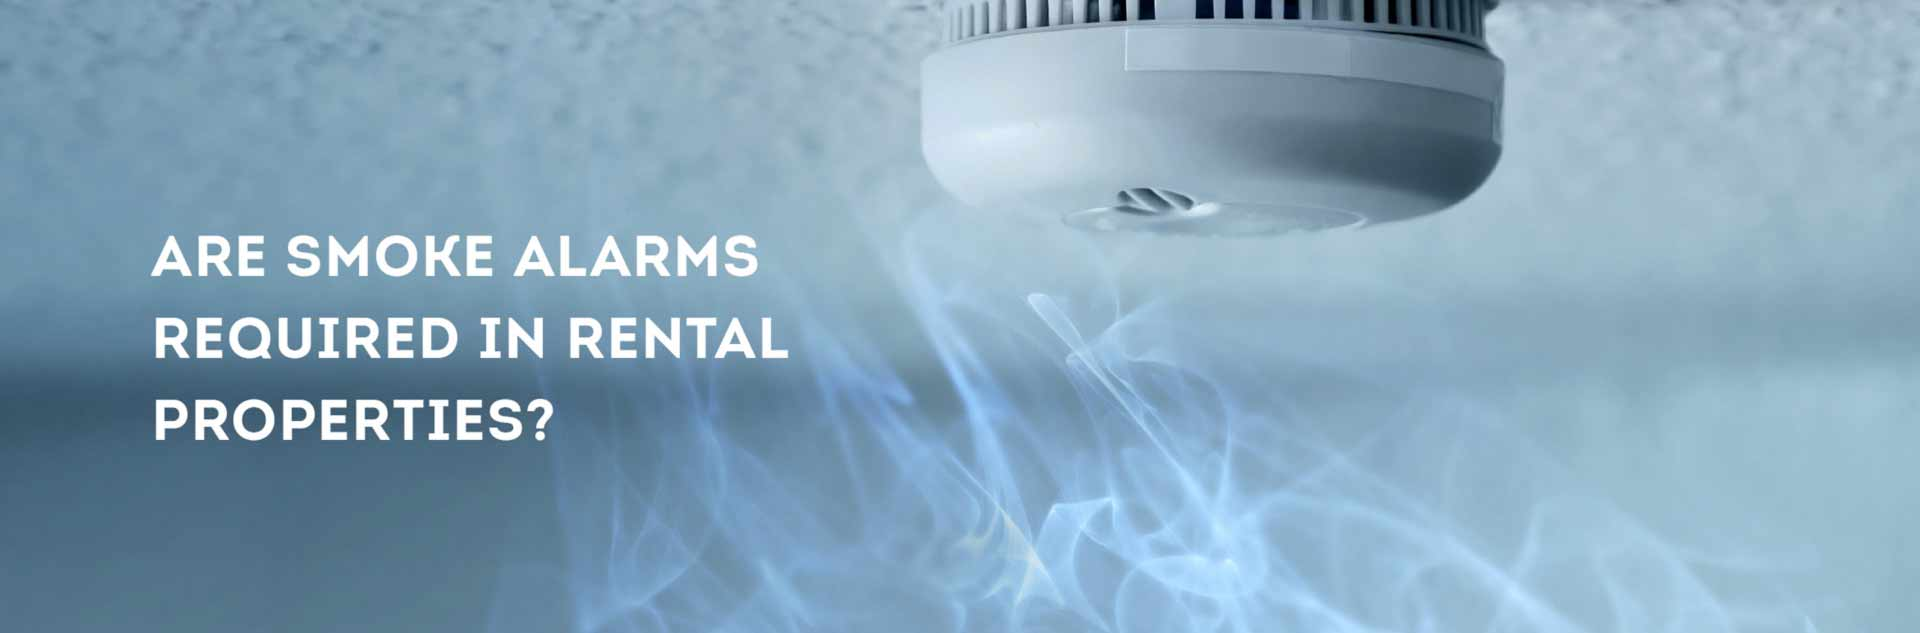 Are smoke alarms required in rental properties?